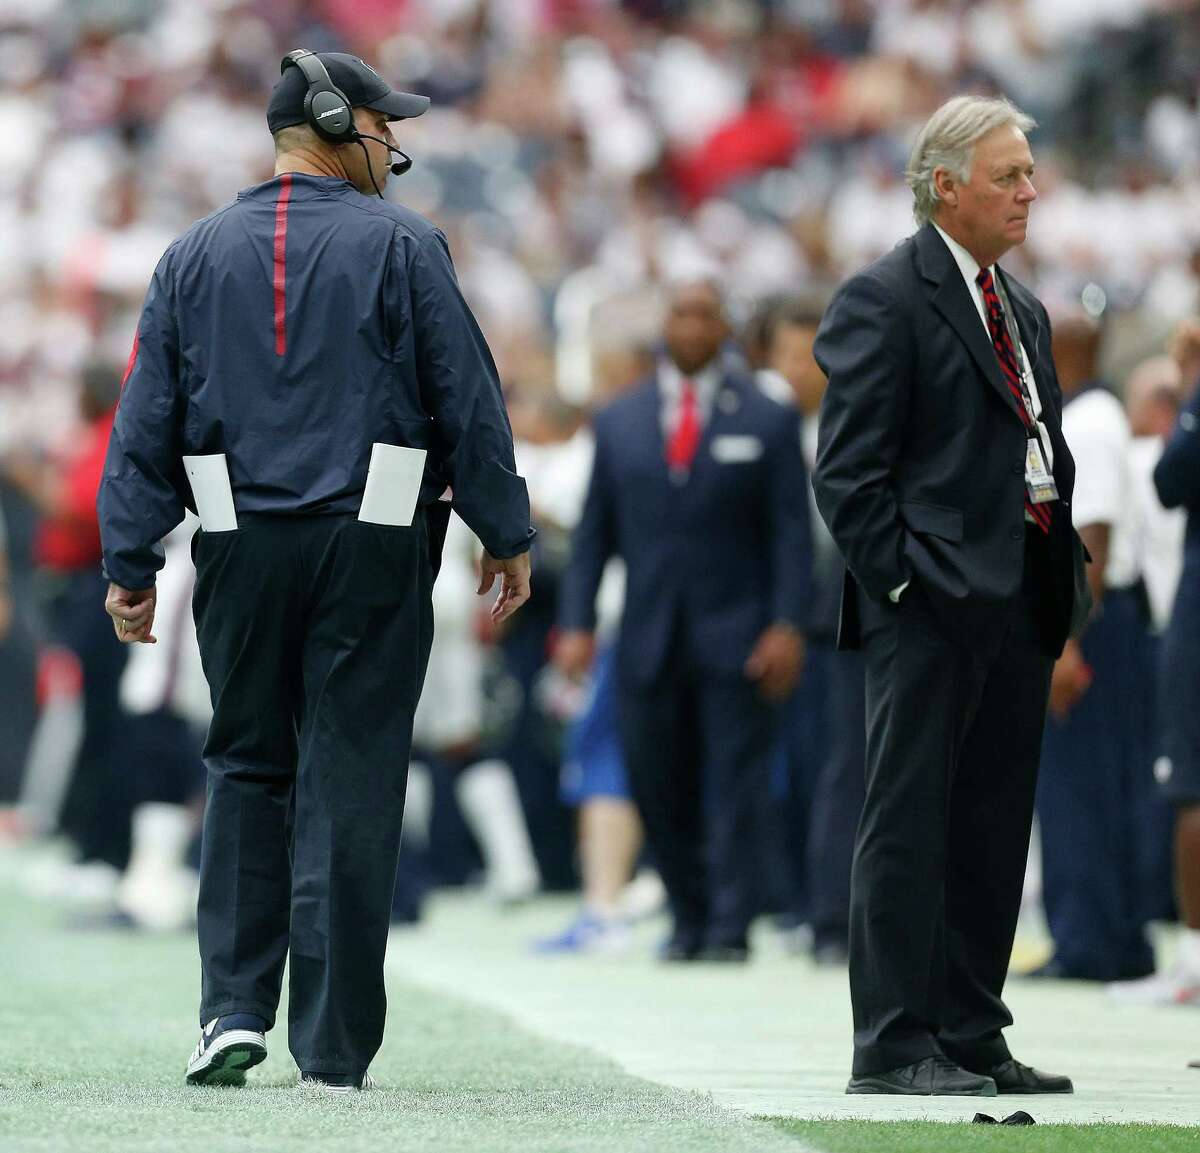 Dr. Arthur Day stands in the Texans bench area near Bill O'Brien during the third quarter of an NFL football game at NRG Stadium on Sunday, Sept. 13, 2015.